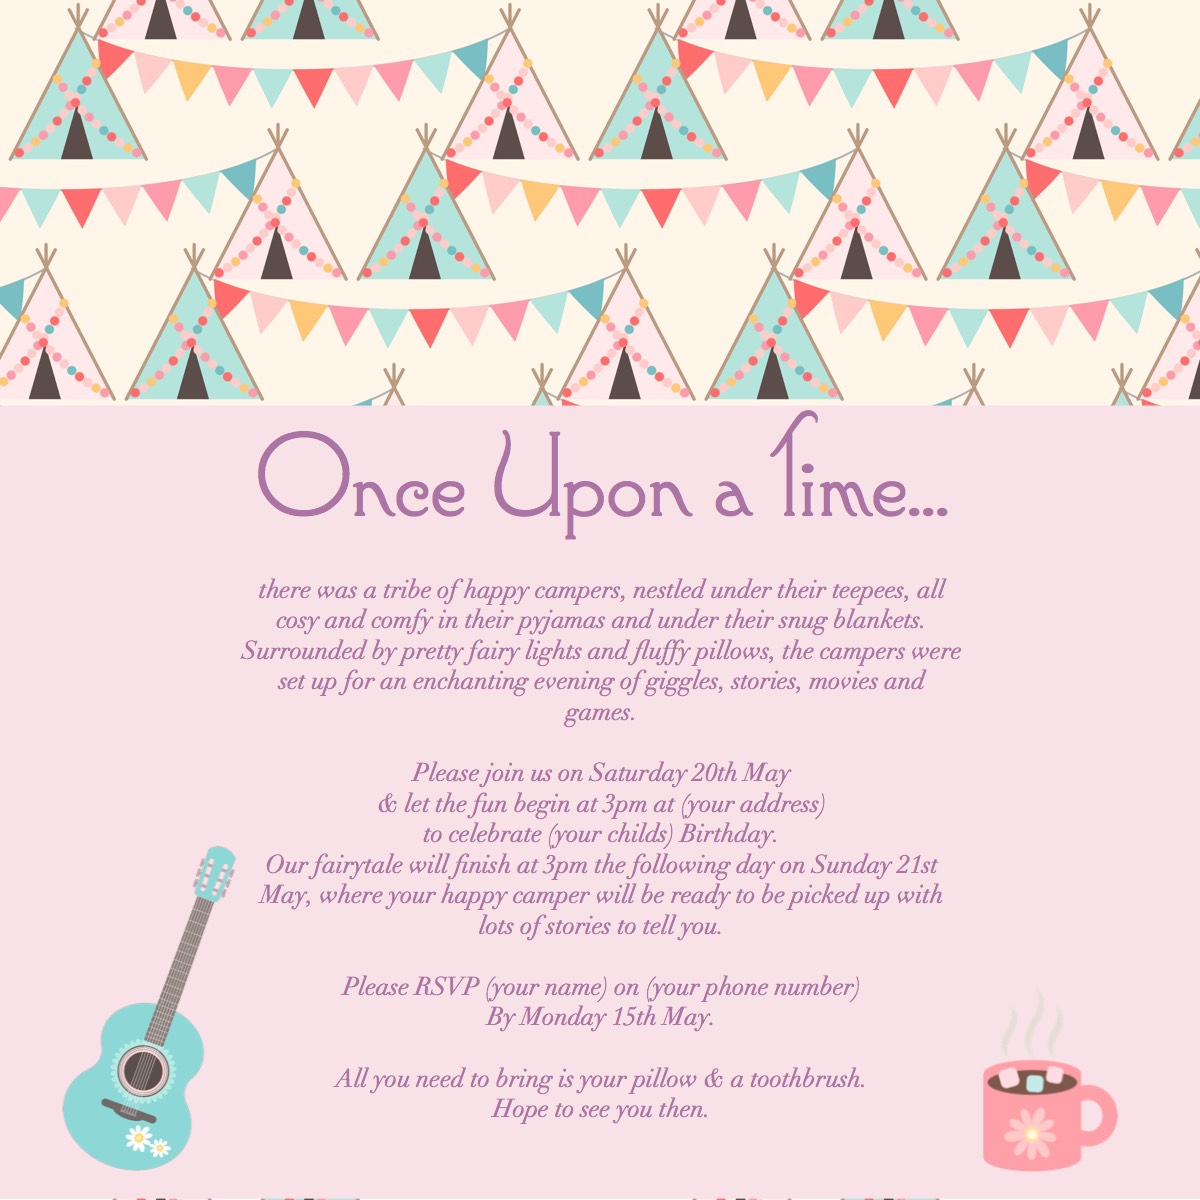 once upon a time sleep over partiesinvite2